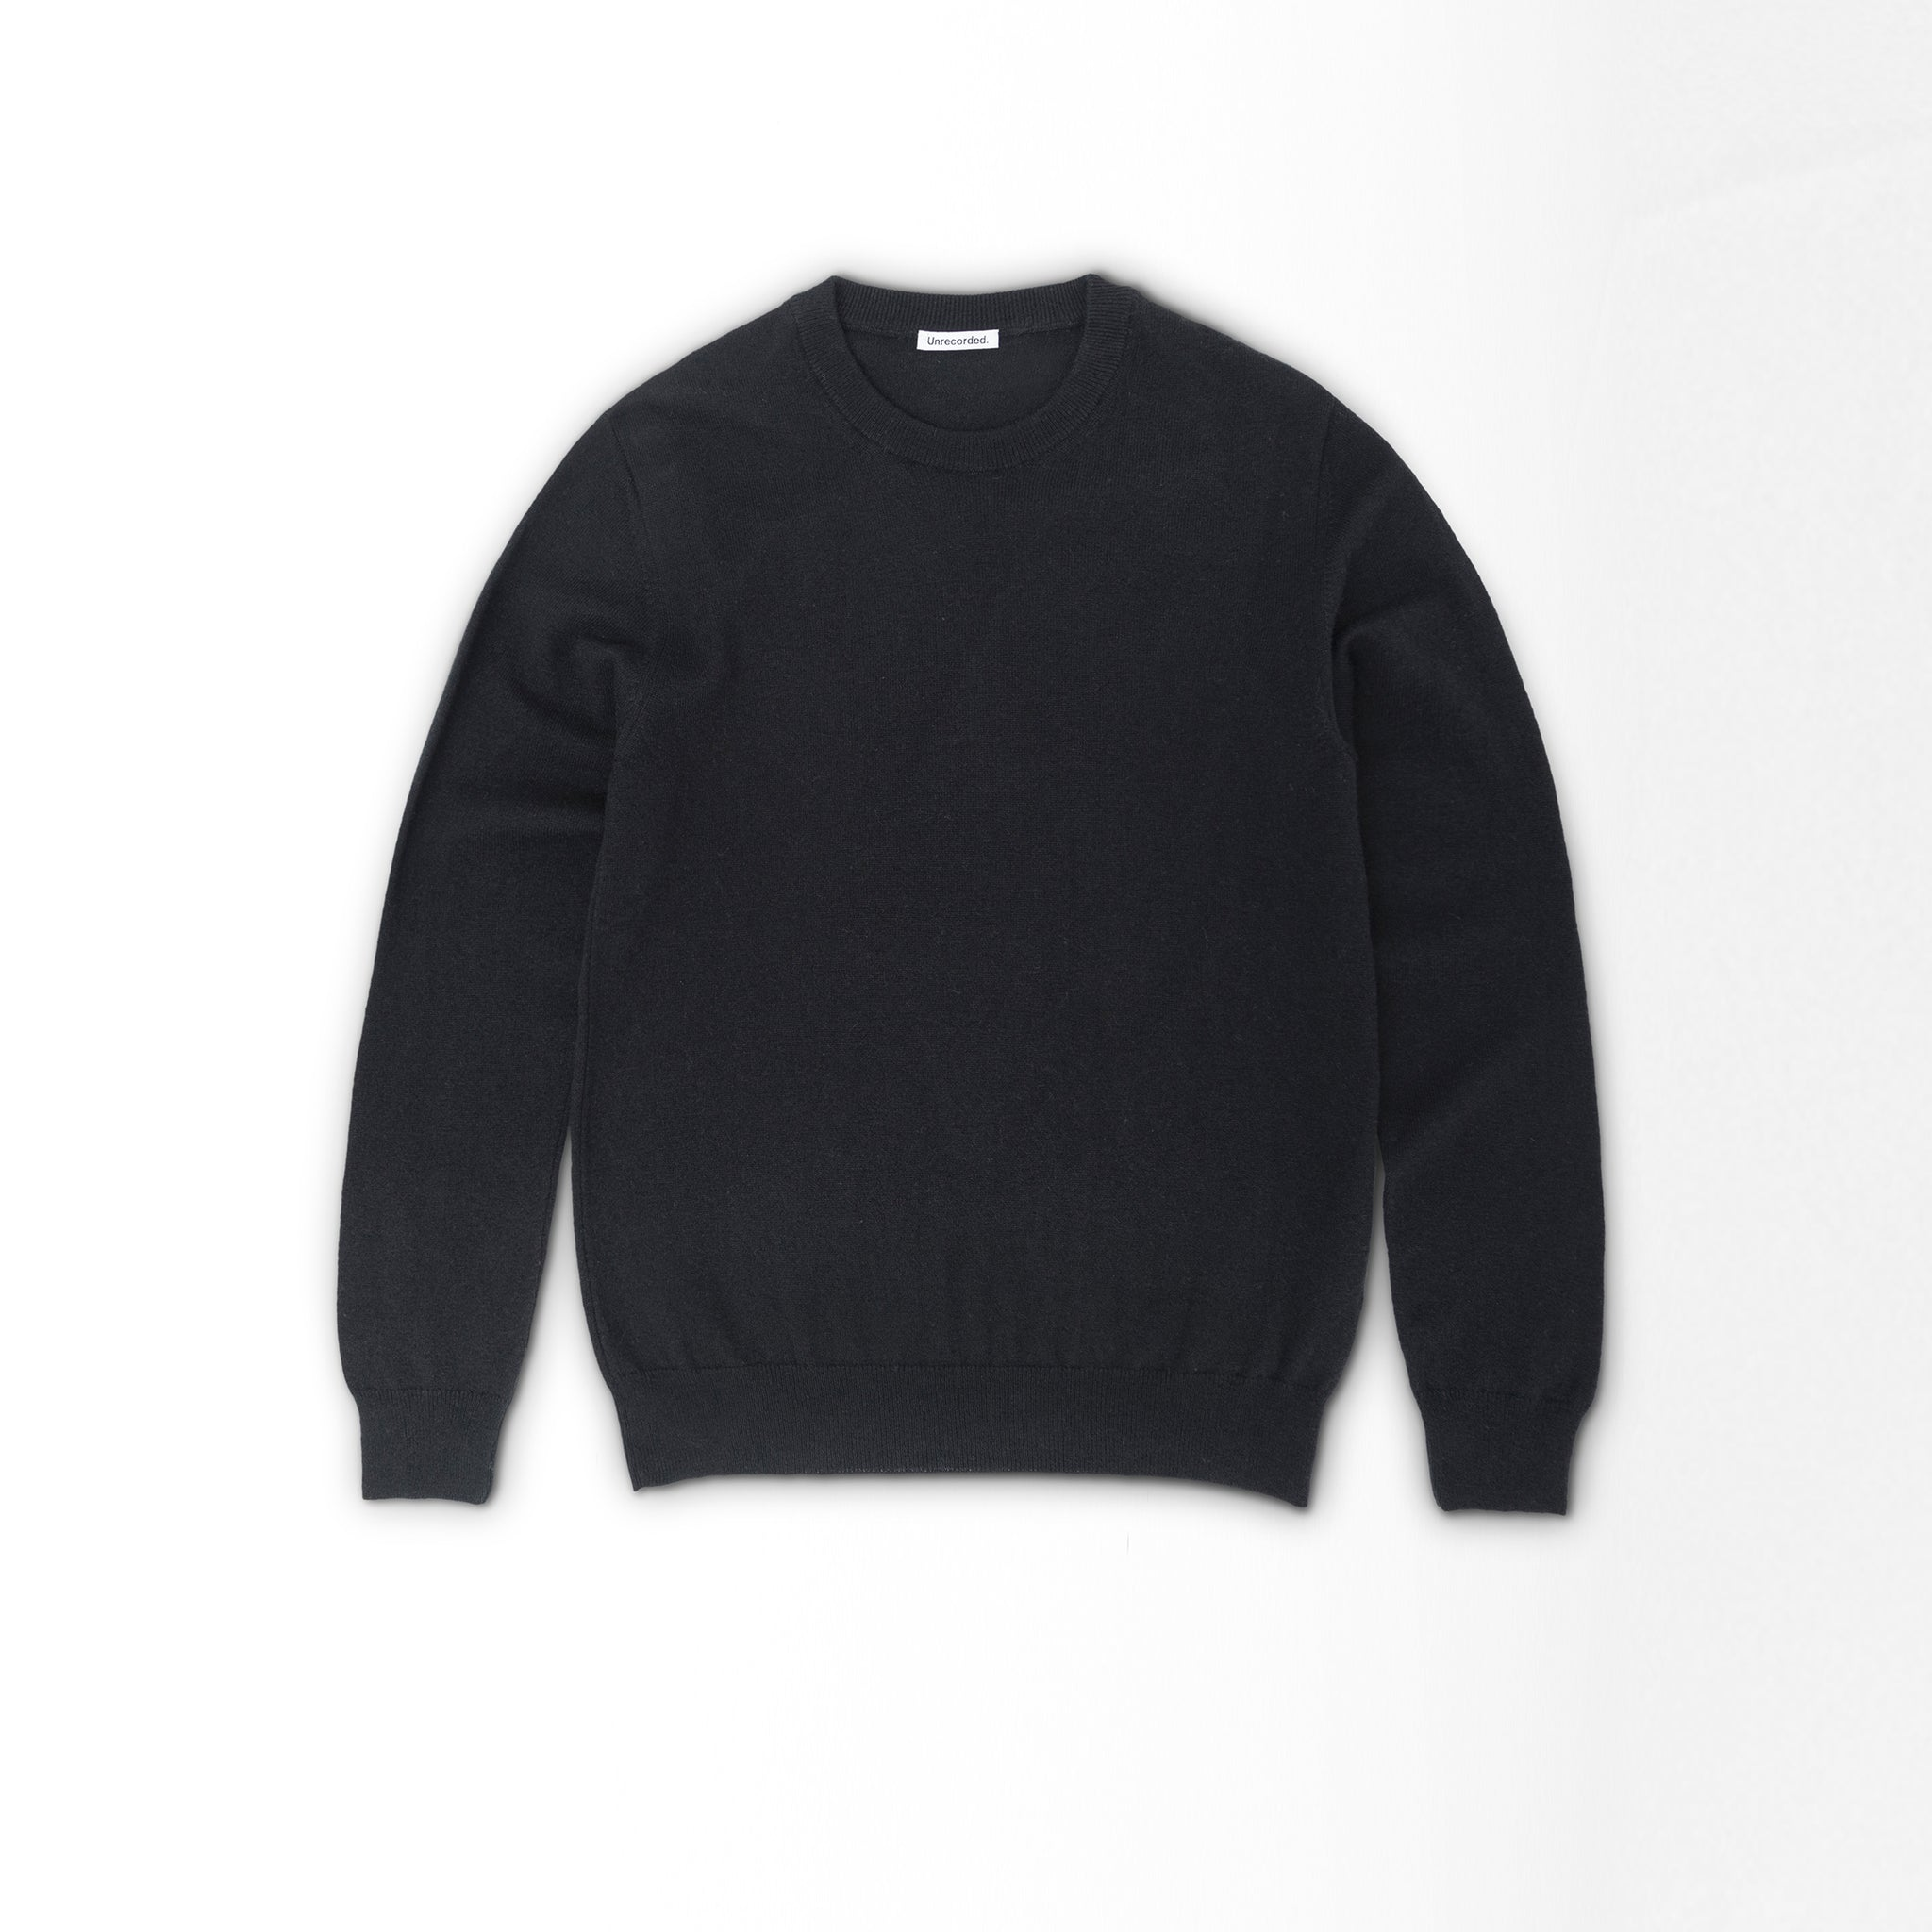 Lambswool Sweater Black - Unrecorded